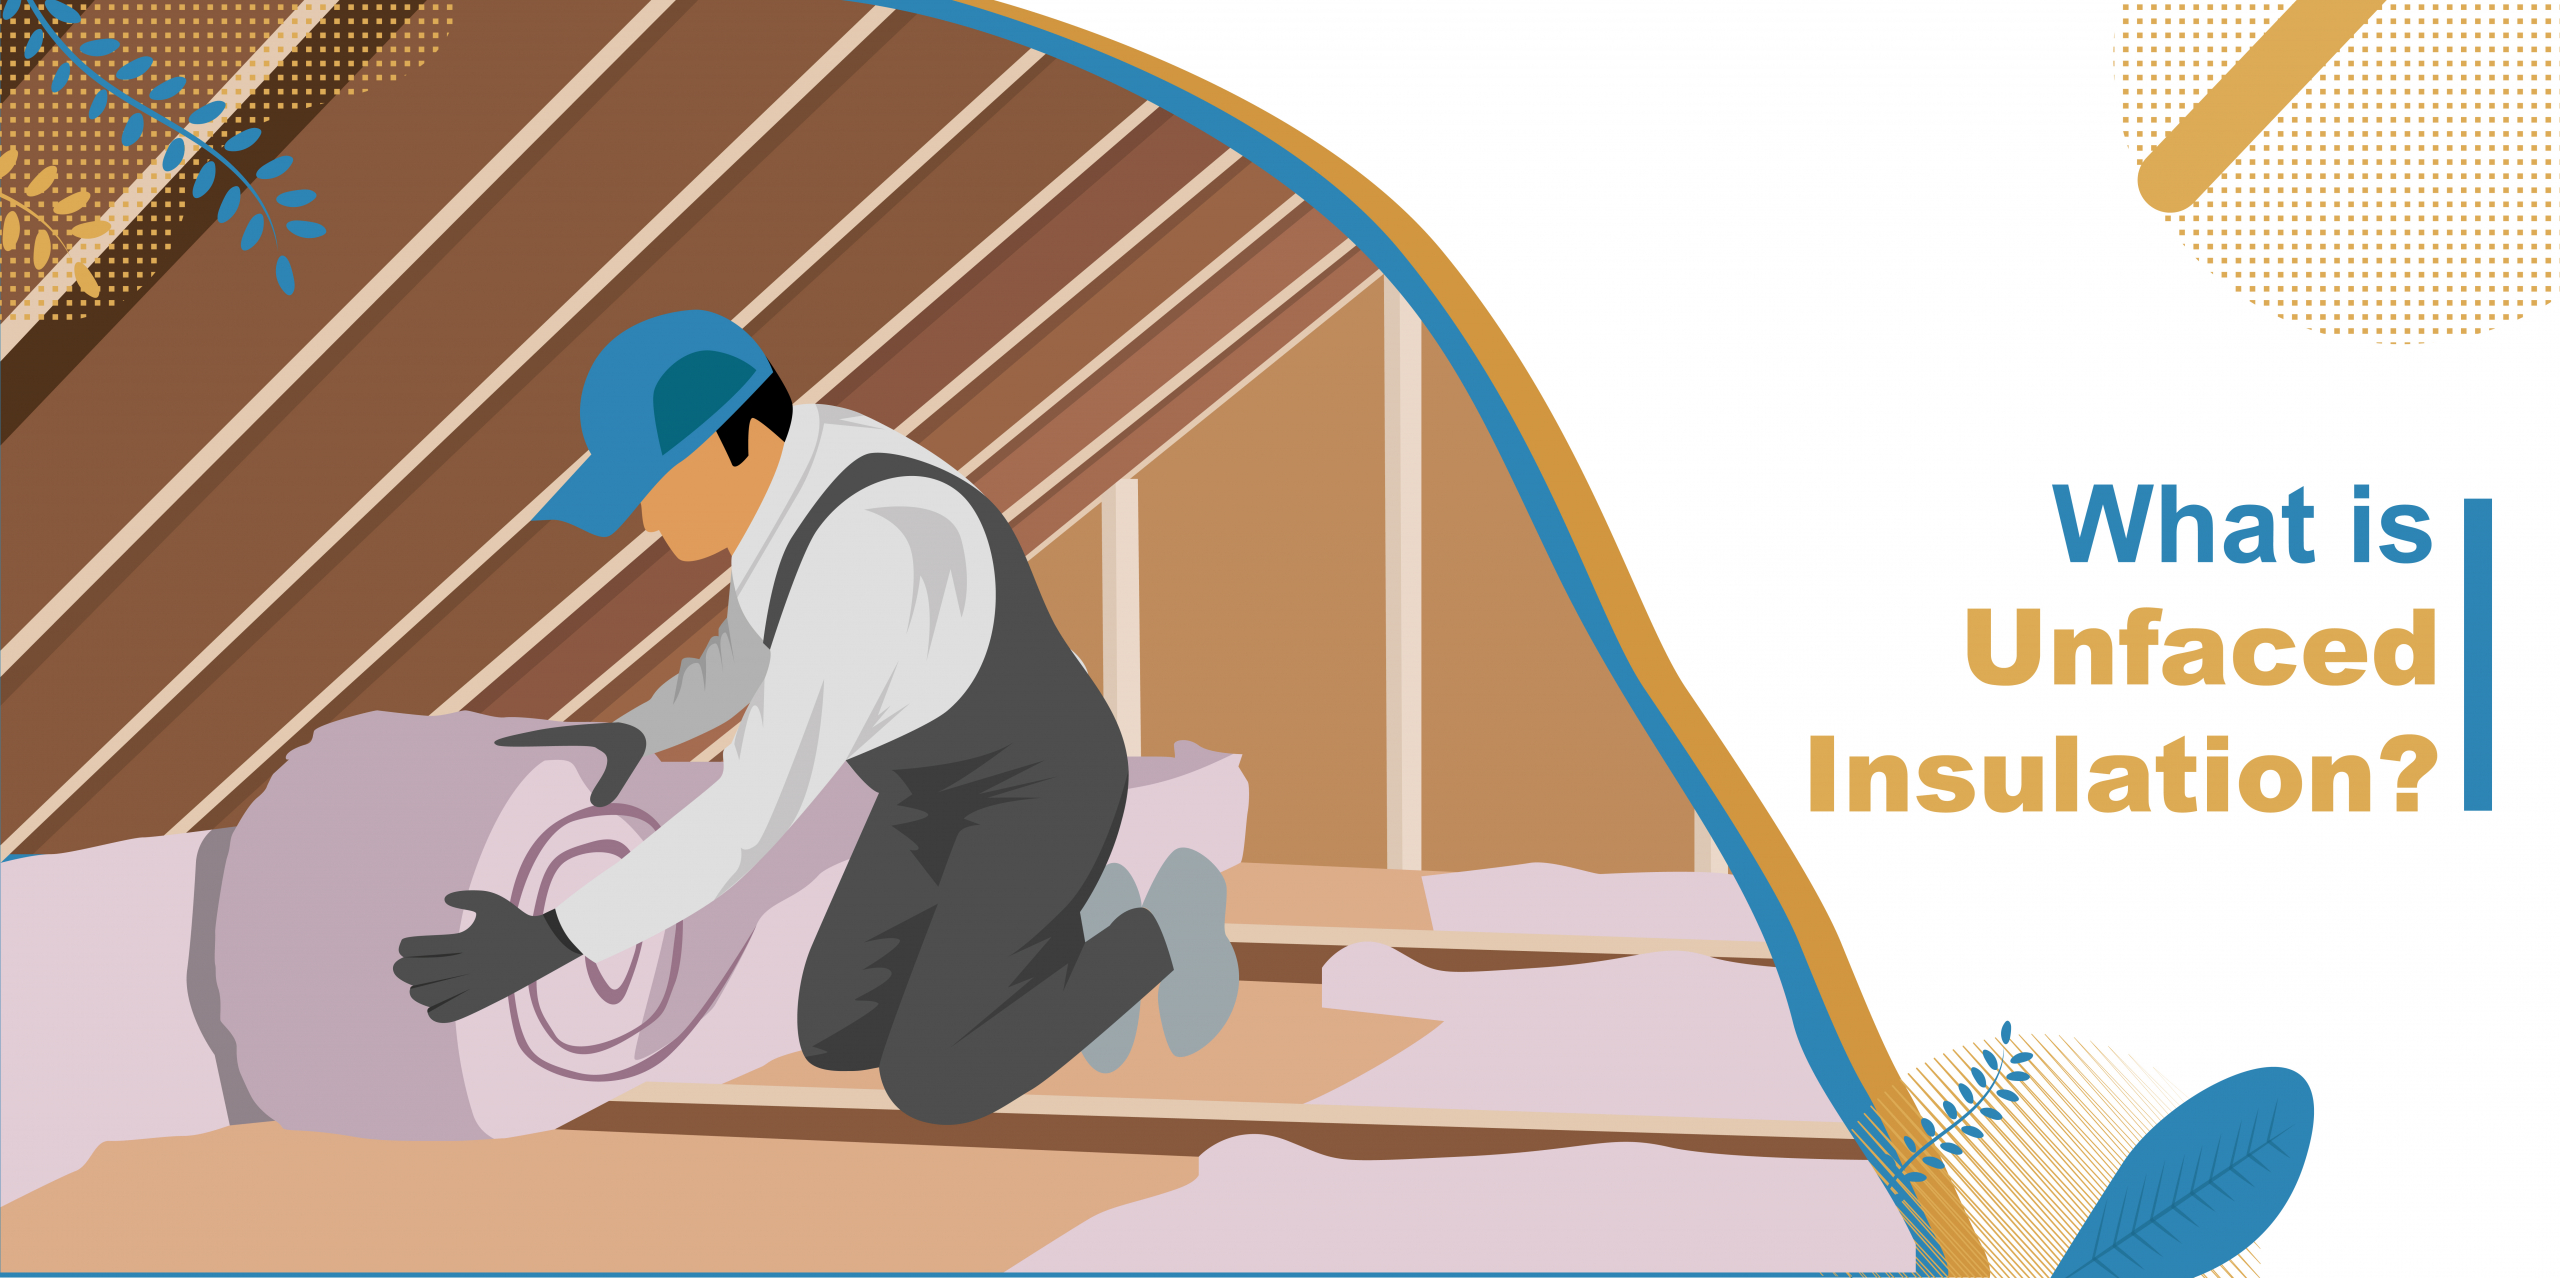 What is Unfaced Insulation?